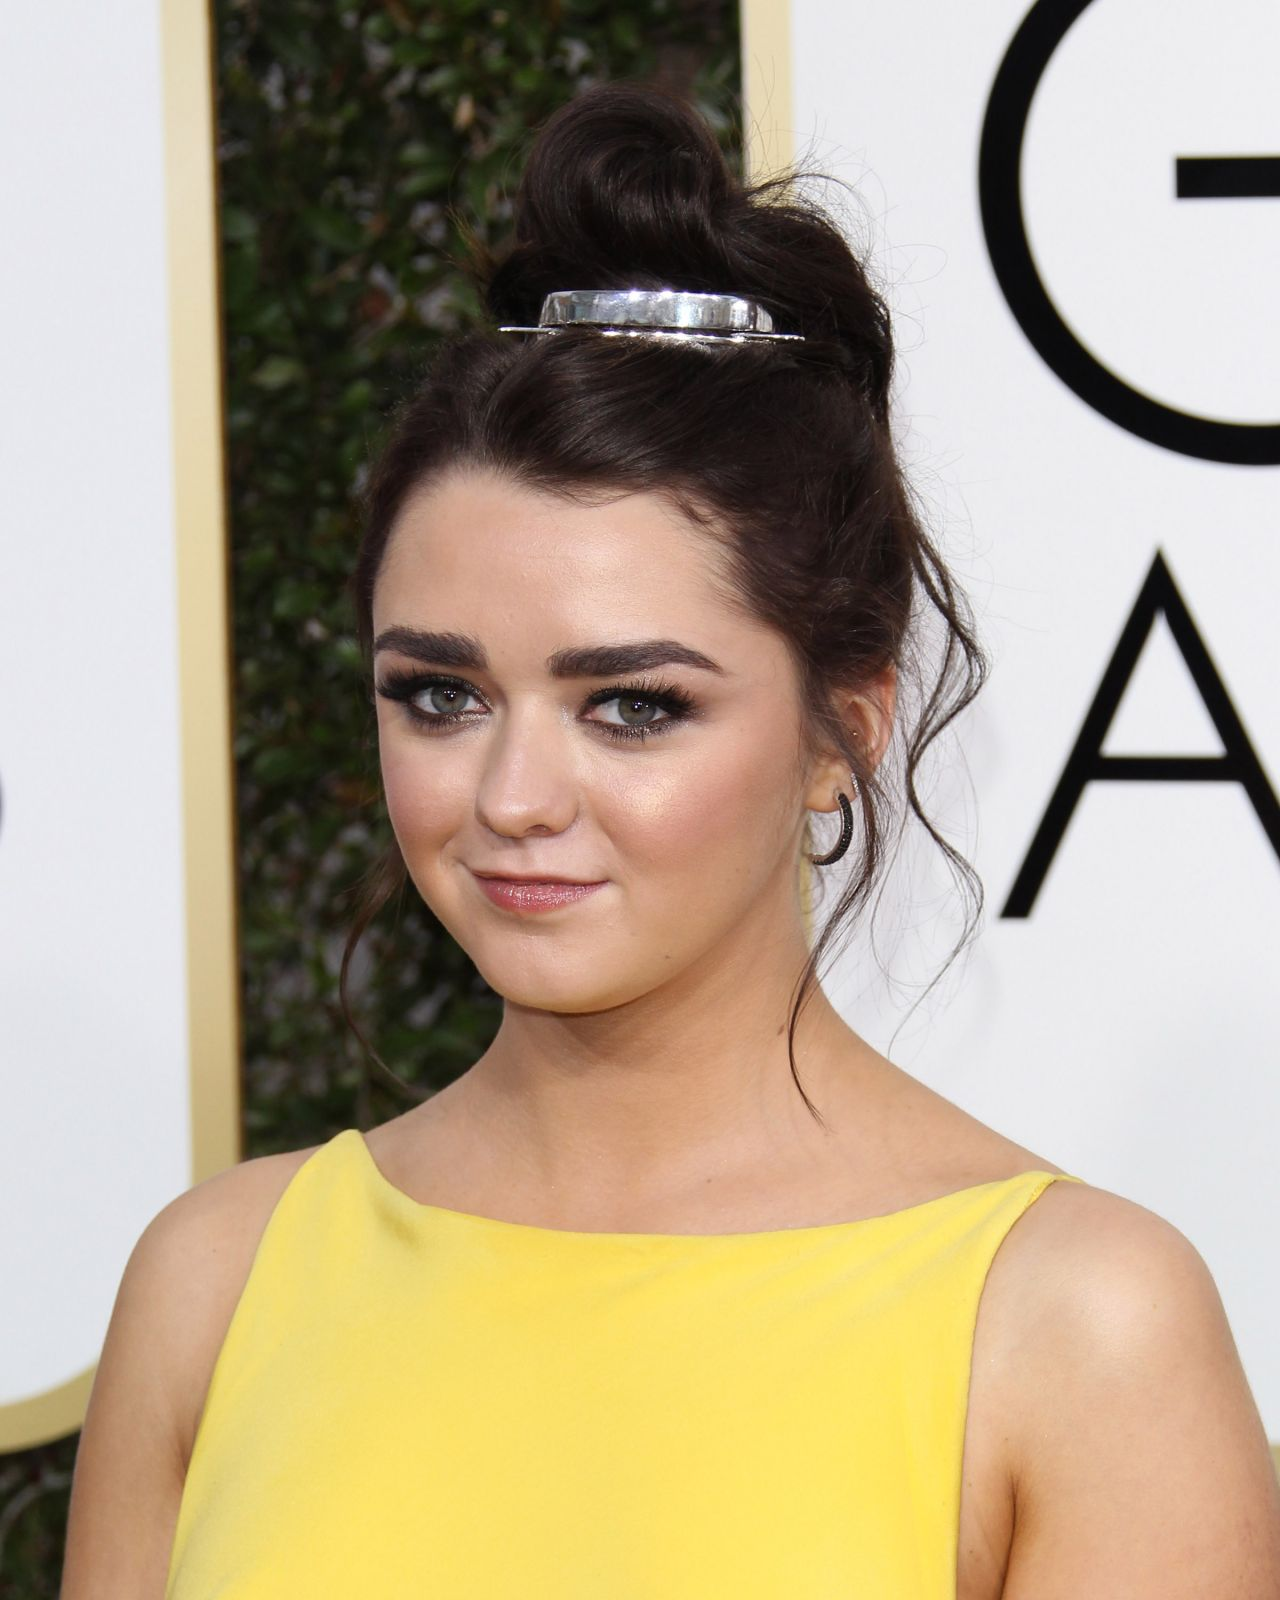 maisie williams - photo #19